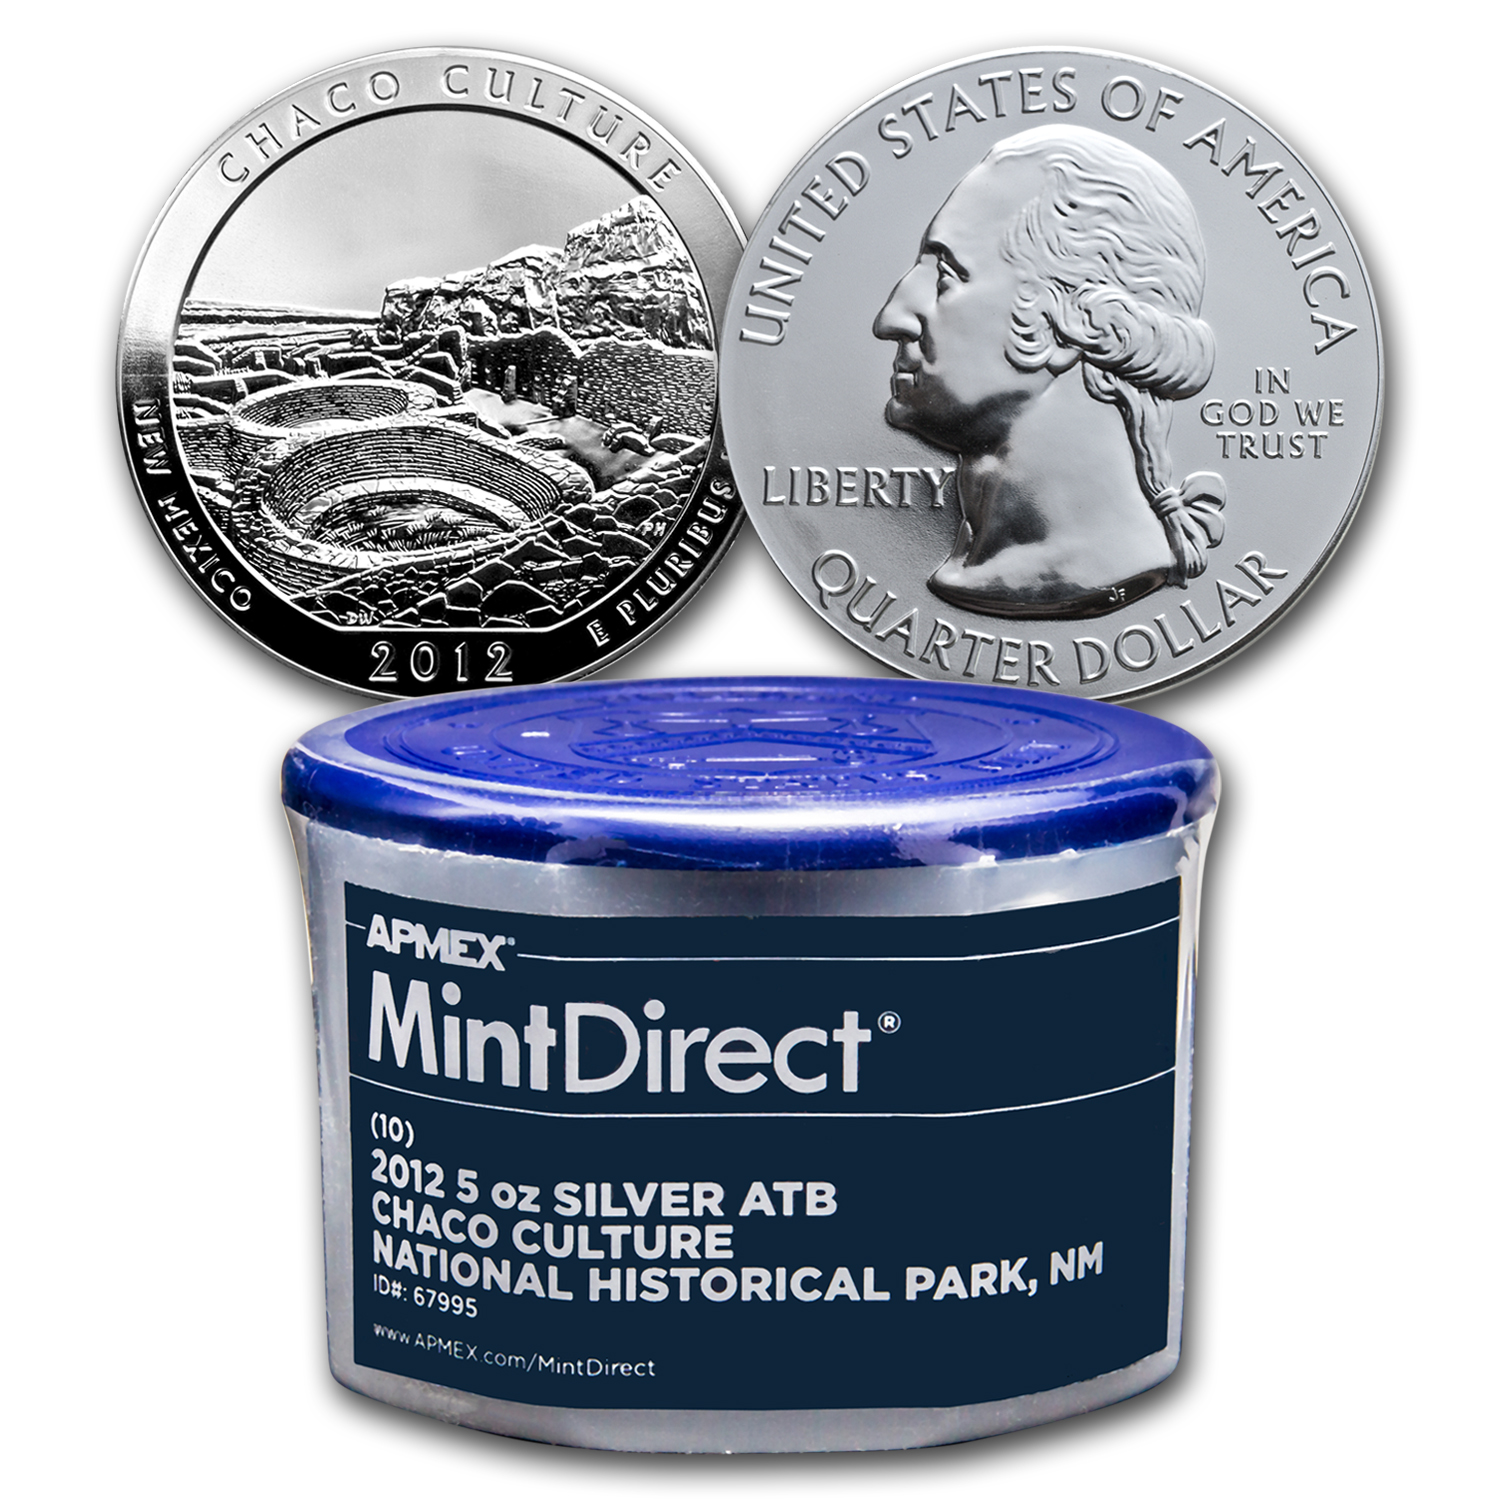 2012 5 oz Silver ATB Chaco Culture, NM (10-Coin MintDirect® Tube)